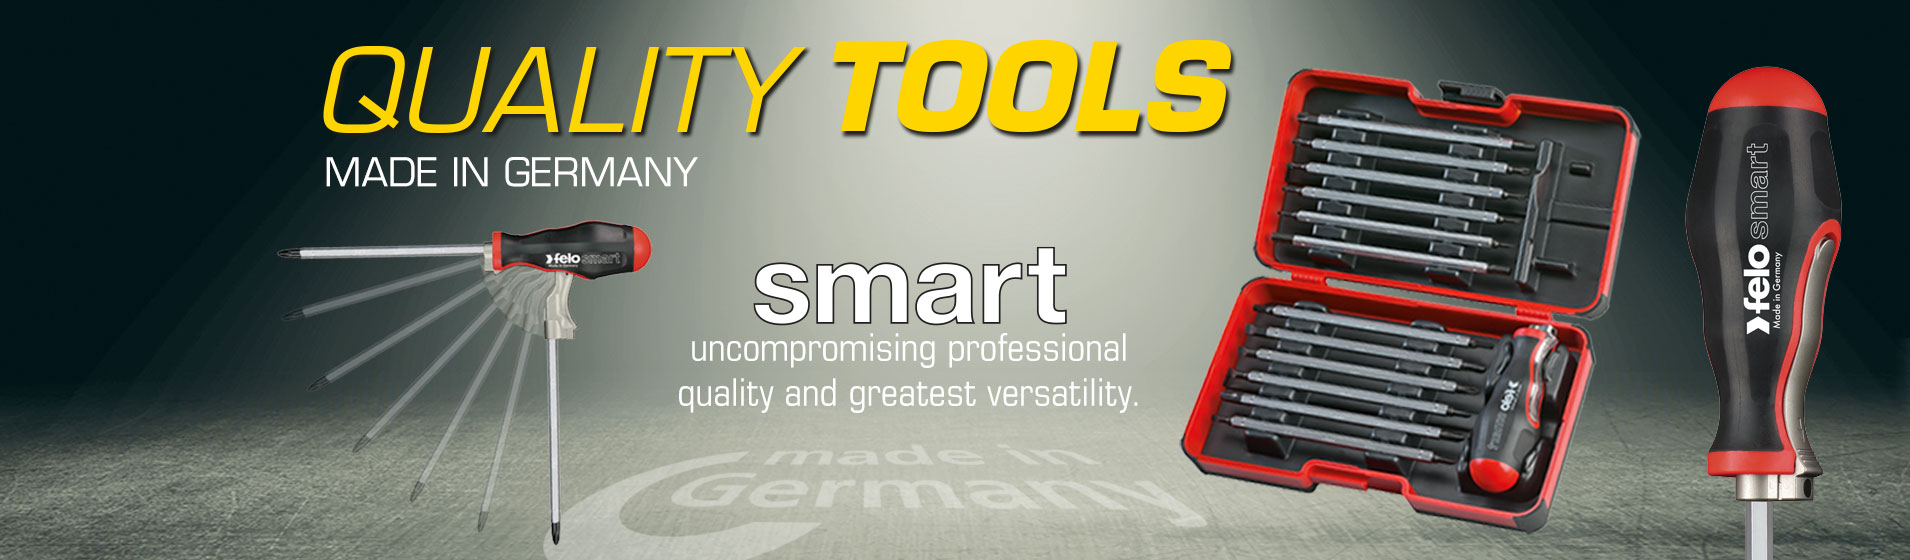 FELO E-SMART - Perfect safety, perfect tool especially for electricians